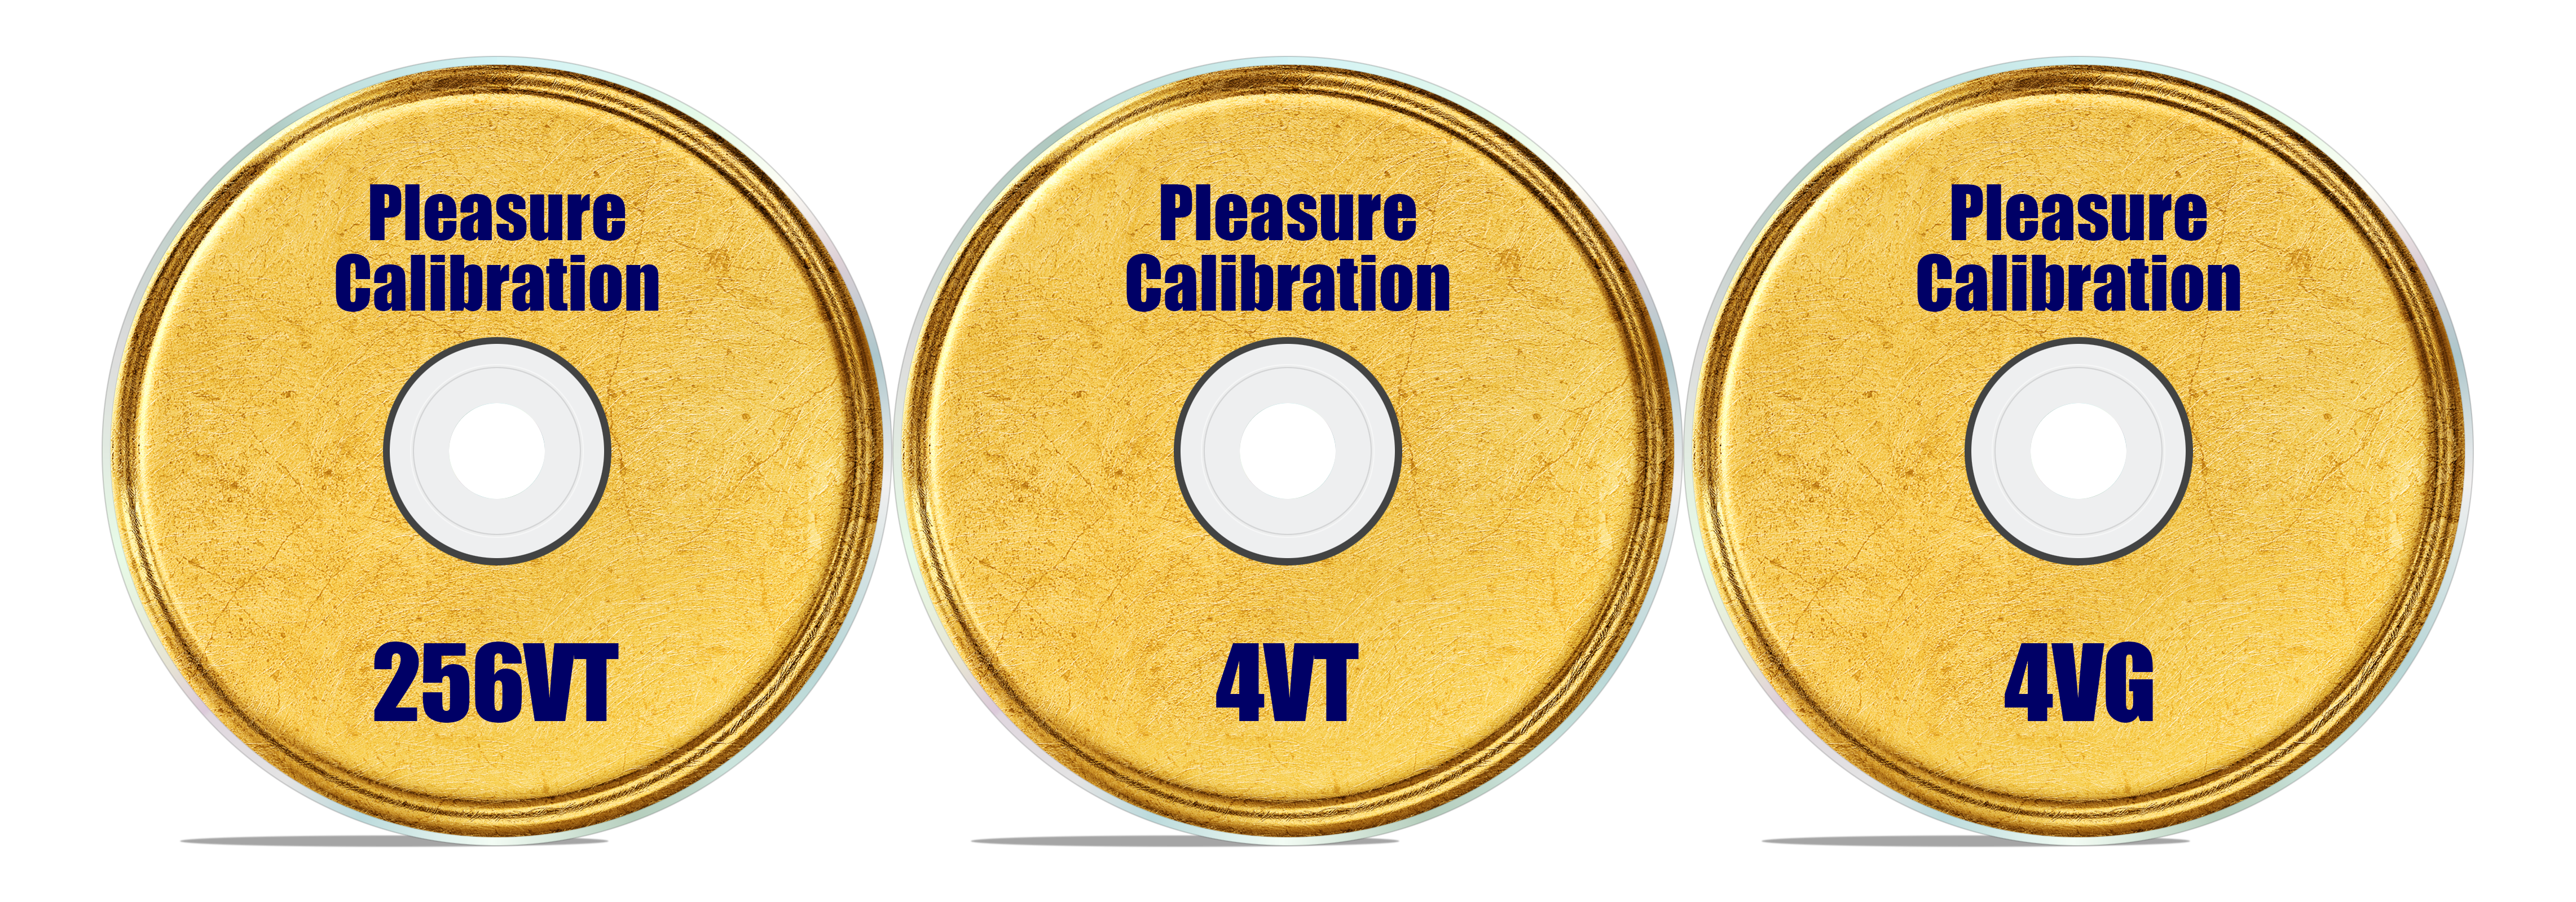 Pleasure Calibration